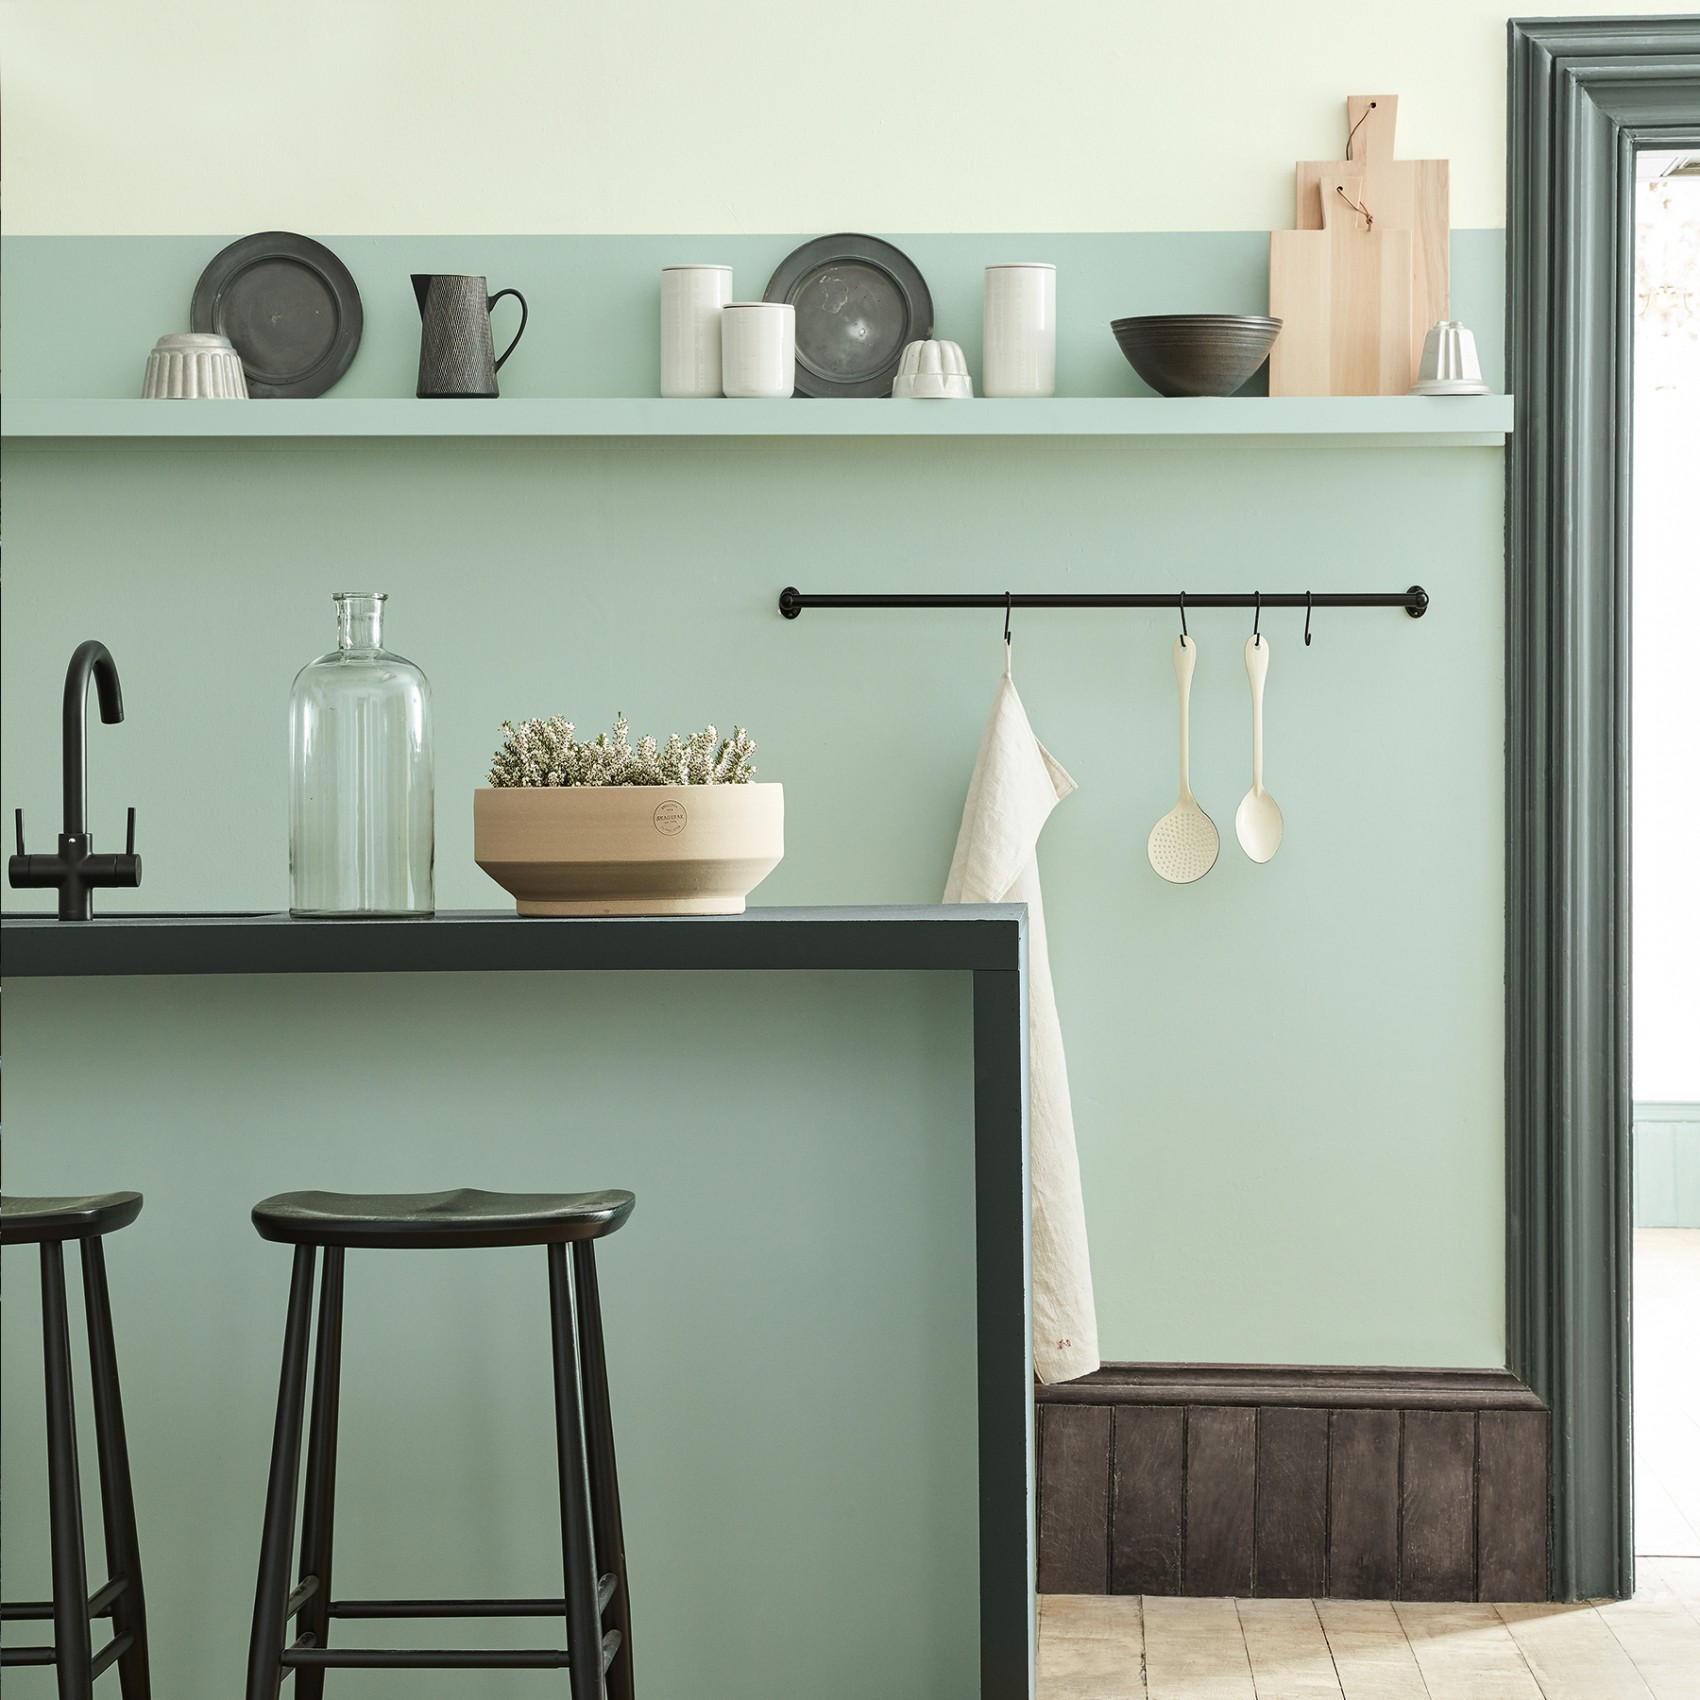 5. Little Greene - Aquamarine - Last but by no means least is the lightest of our paint picks, Little Greene's Aquamarine. A playful and light-hearted shade, the cool minty-ness of this colour evokes a sense of tranquillity that lends it wonderfully to functional spaces such as kitchens and bathrooms. The introduction of blue / green undertones ensures that it doesn't fall into the sickly sweet category, making it the perfect partner for contemporary spaces. We suggest combining an Aquamarine painted wall with dark woods and black contrasting accents, offset with shades of putty pink and off white.£47.00 for 2.5L Intelligent Matt Emulsionwww.littlegreene.com